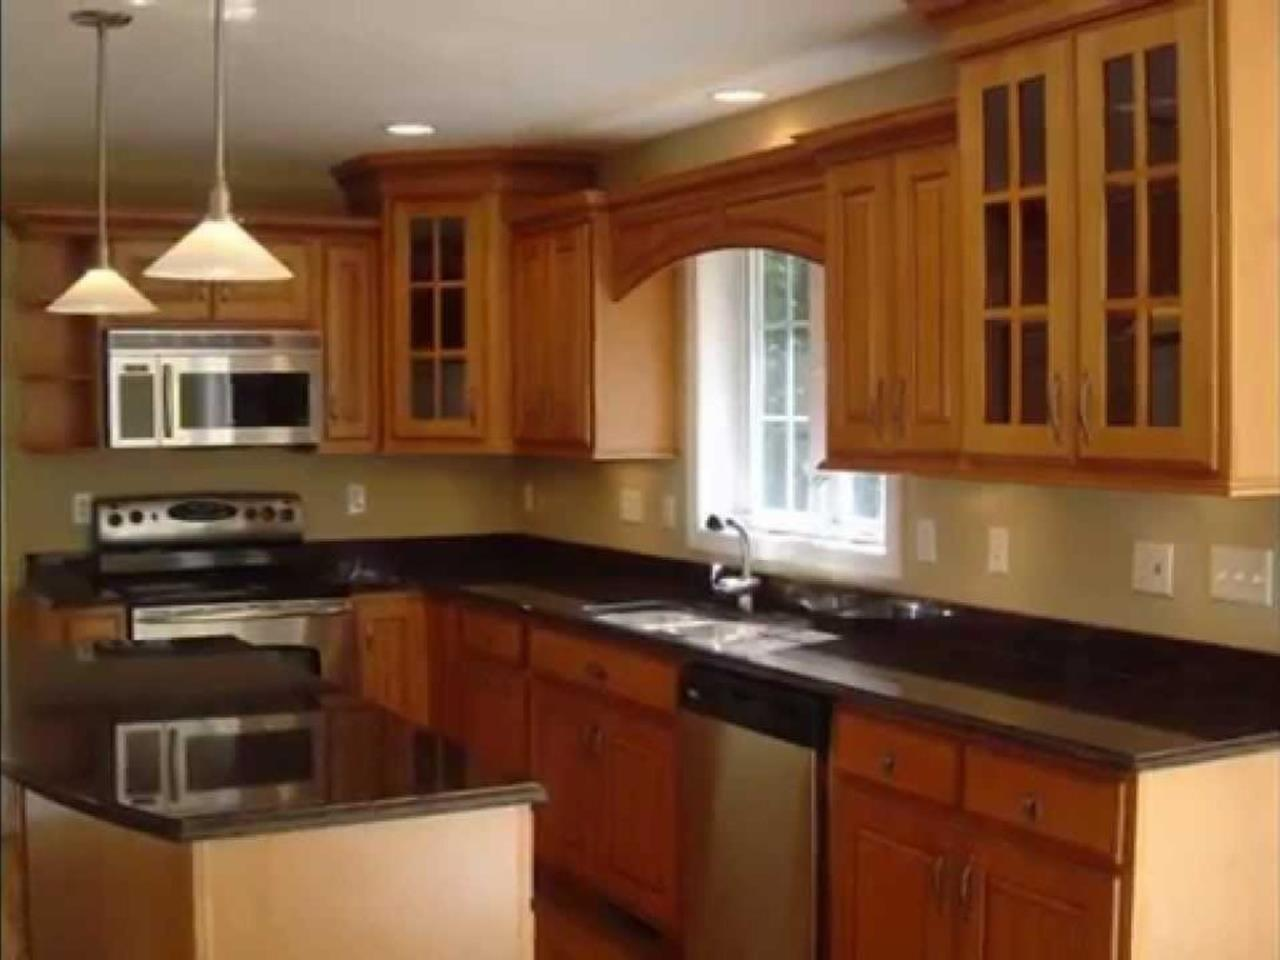 Kitchen Makeover Ideas On A Budget 16